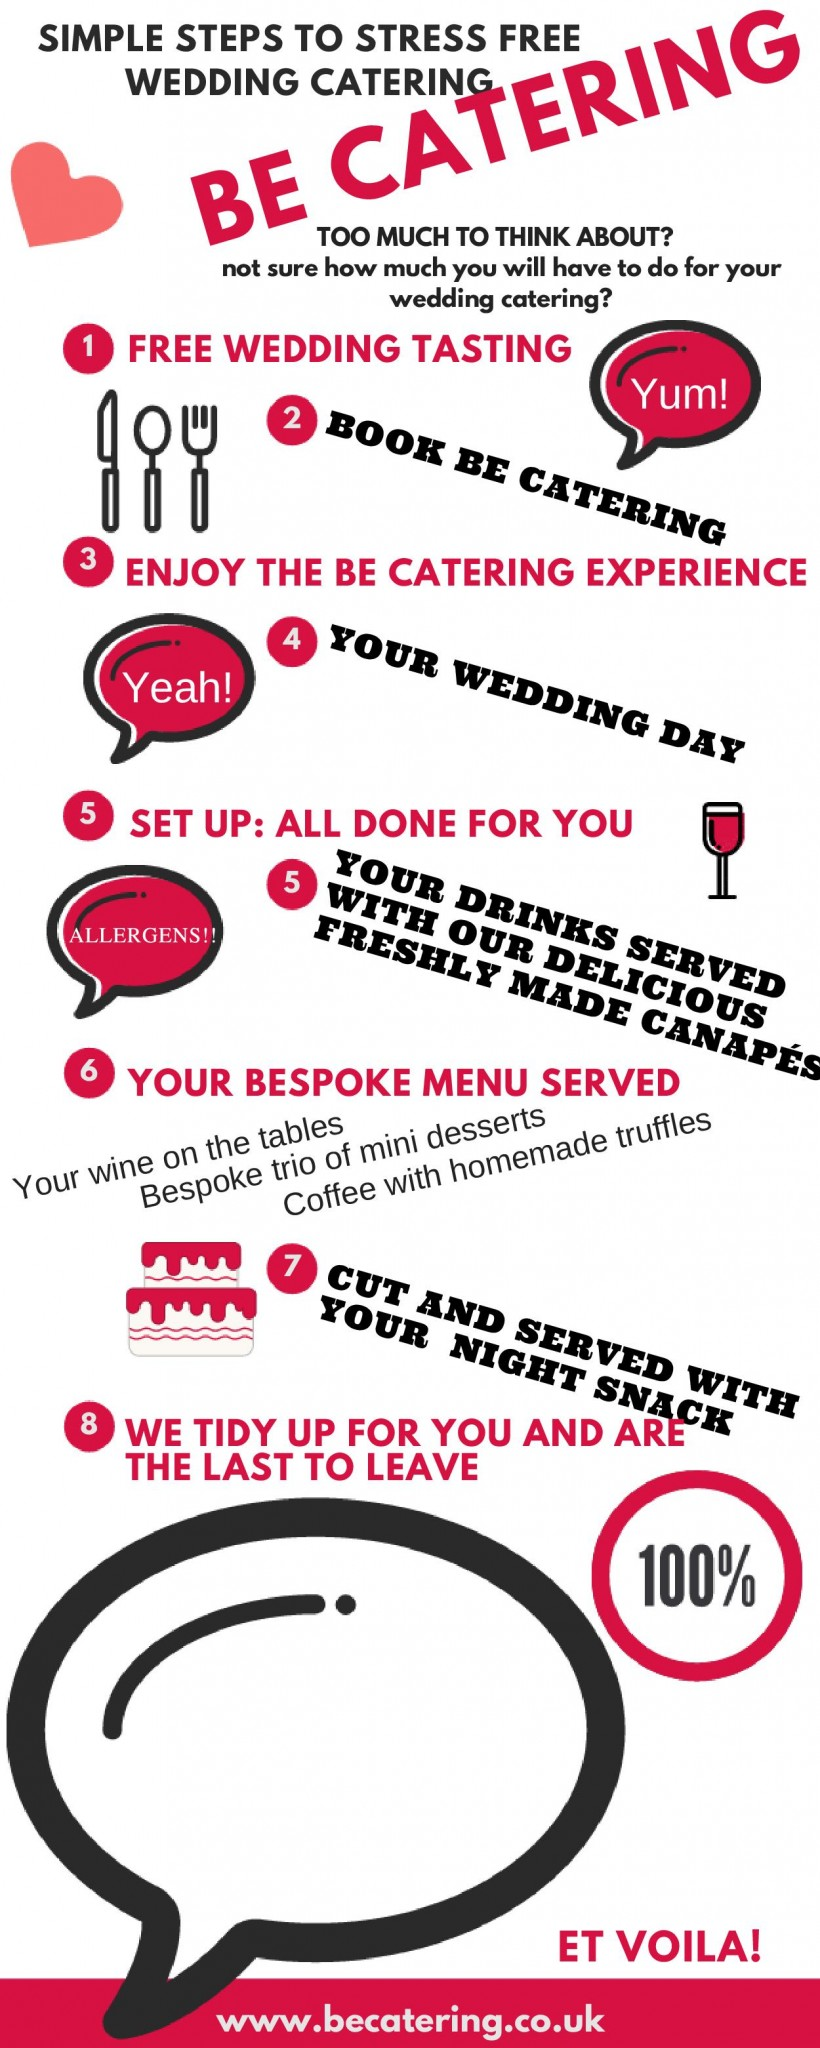 SIMPLE STEPS TO STRESS FREE WEDDINGCATERING (1)-page-001